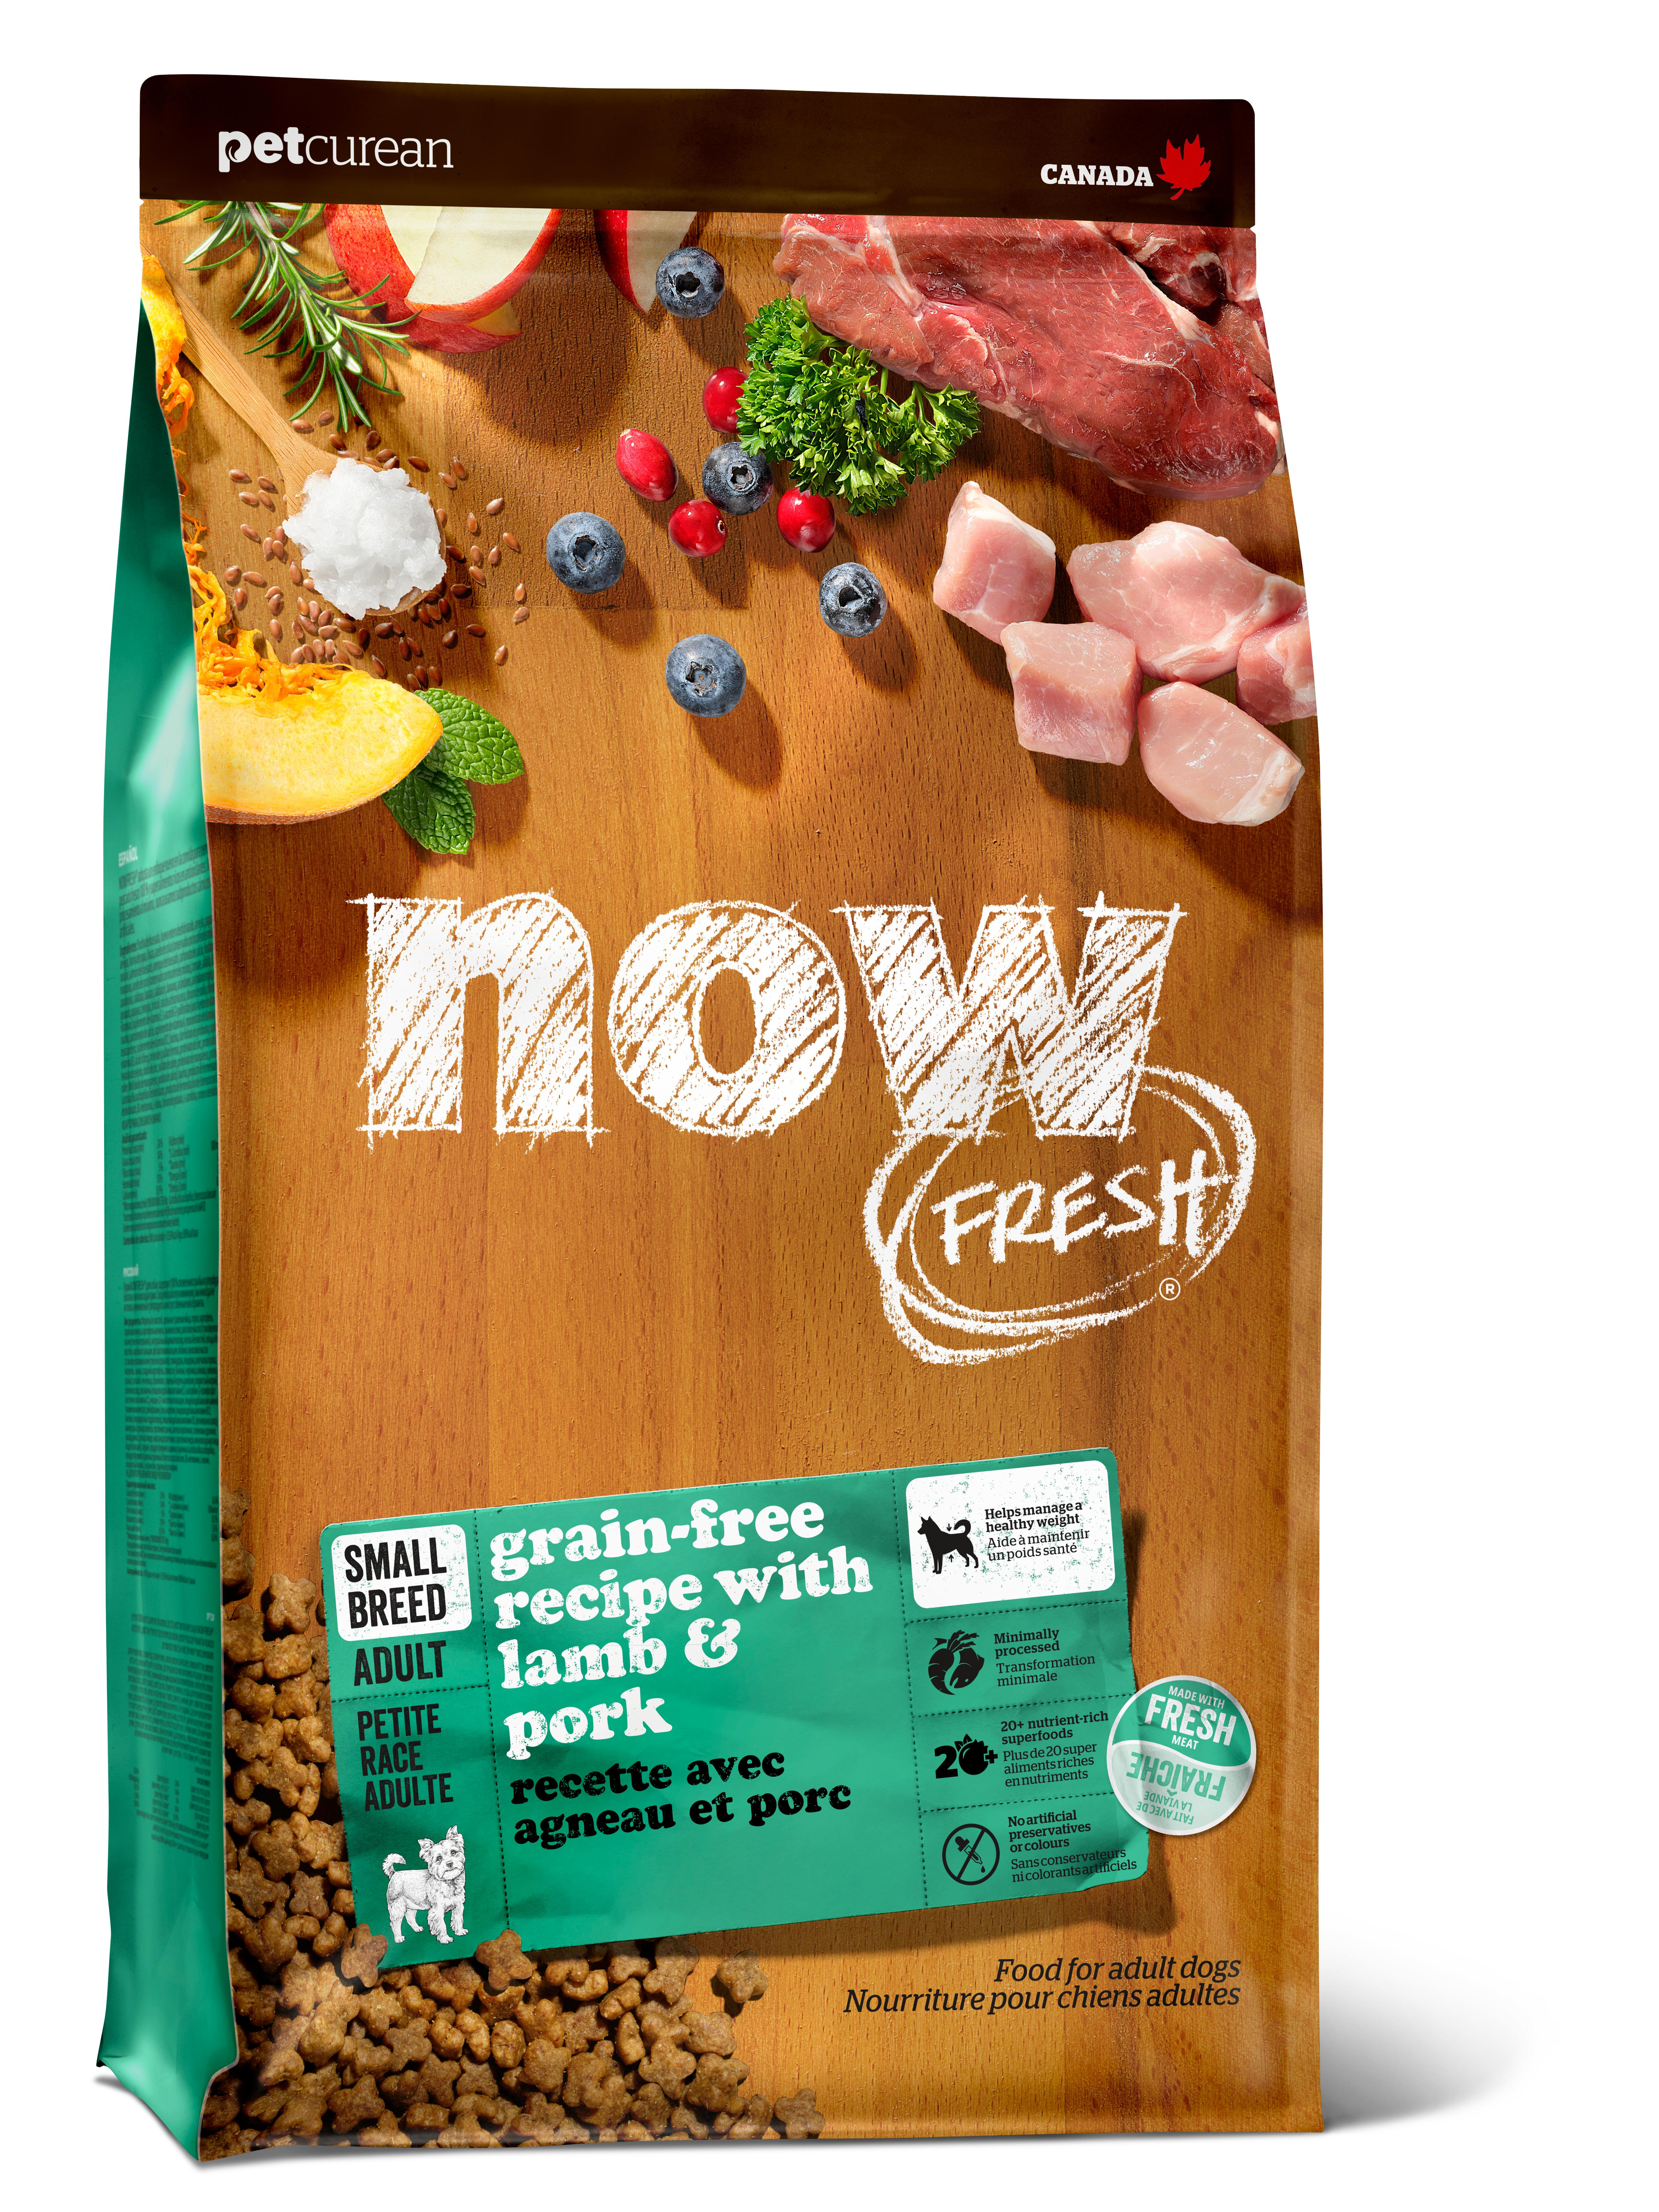 NOW FRESH Lamb & Pork Small Breed Grain-Free Dry Dog Food Image